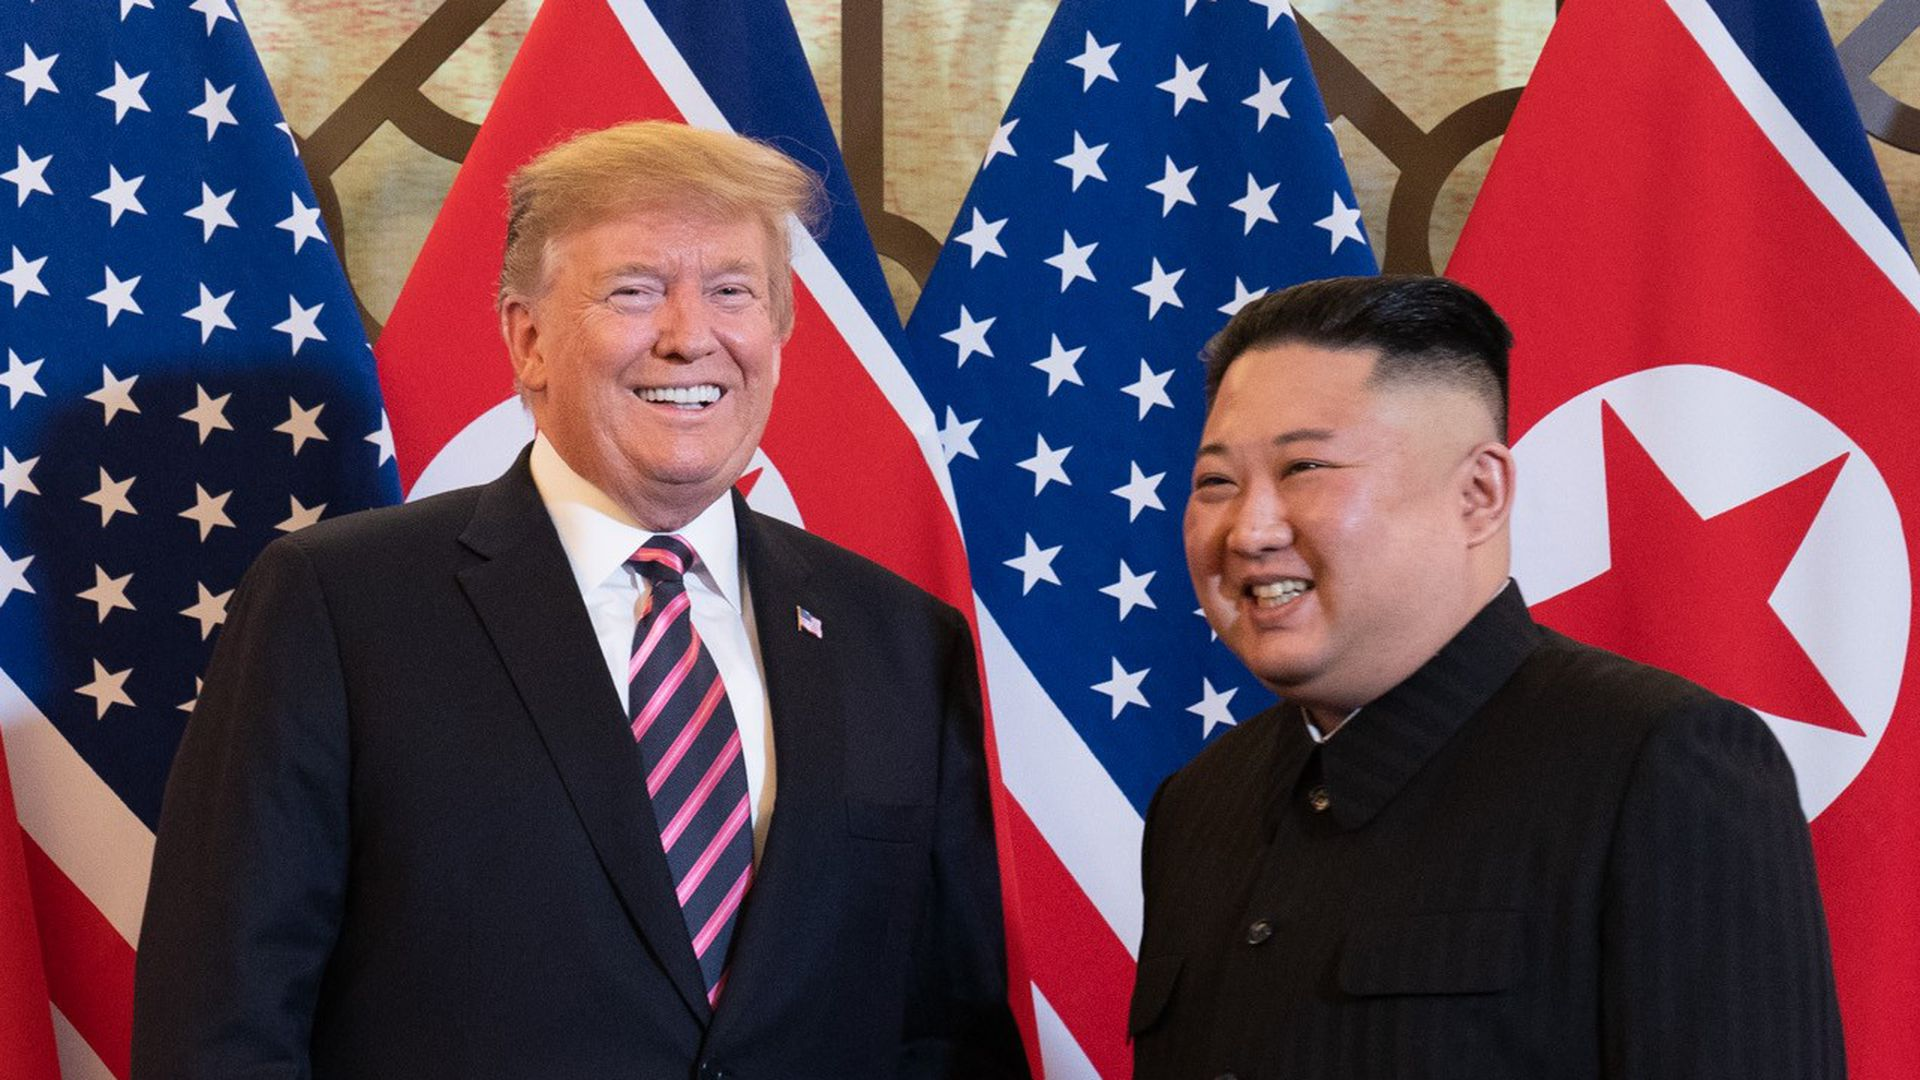 Researchers say they observed attacks as President Trump met with Kim Jong-un.